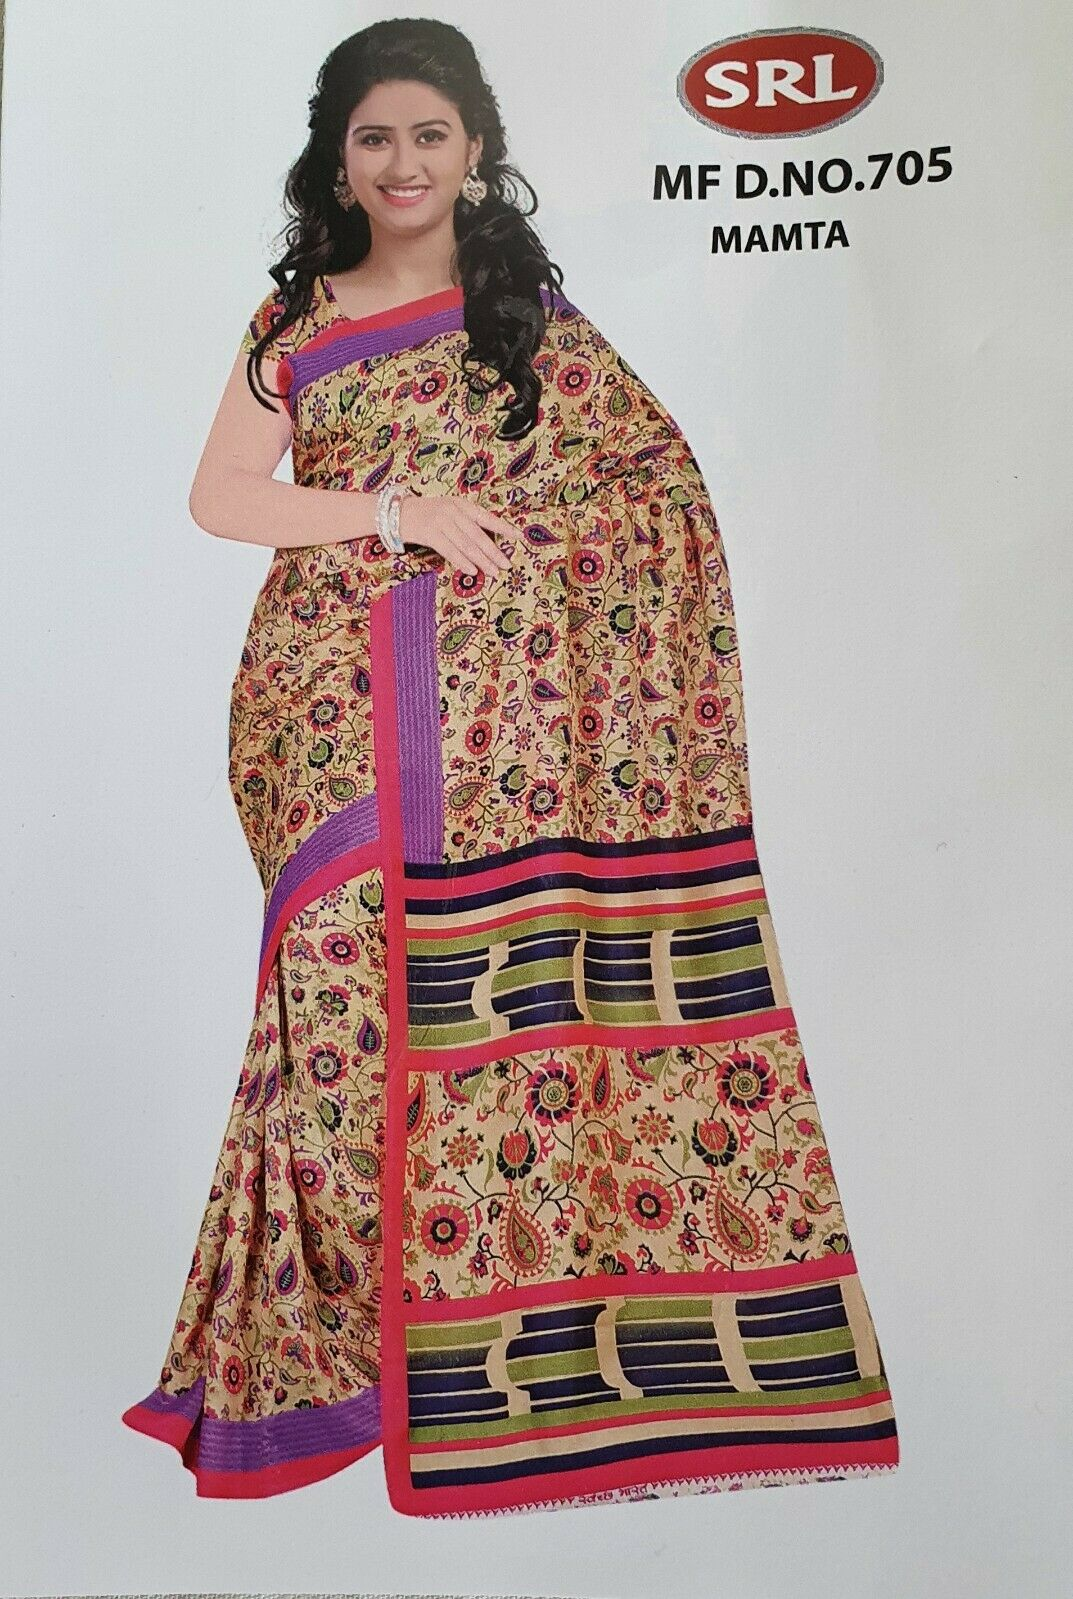 Floral Printed Polyester multicolour bollywood pakistani wash and wear Saree New